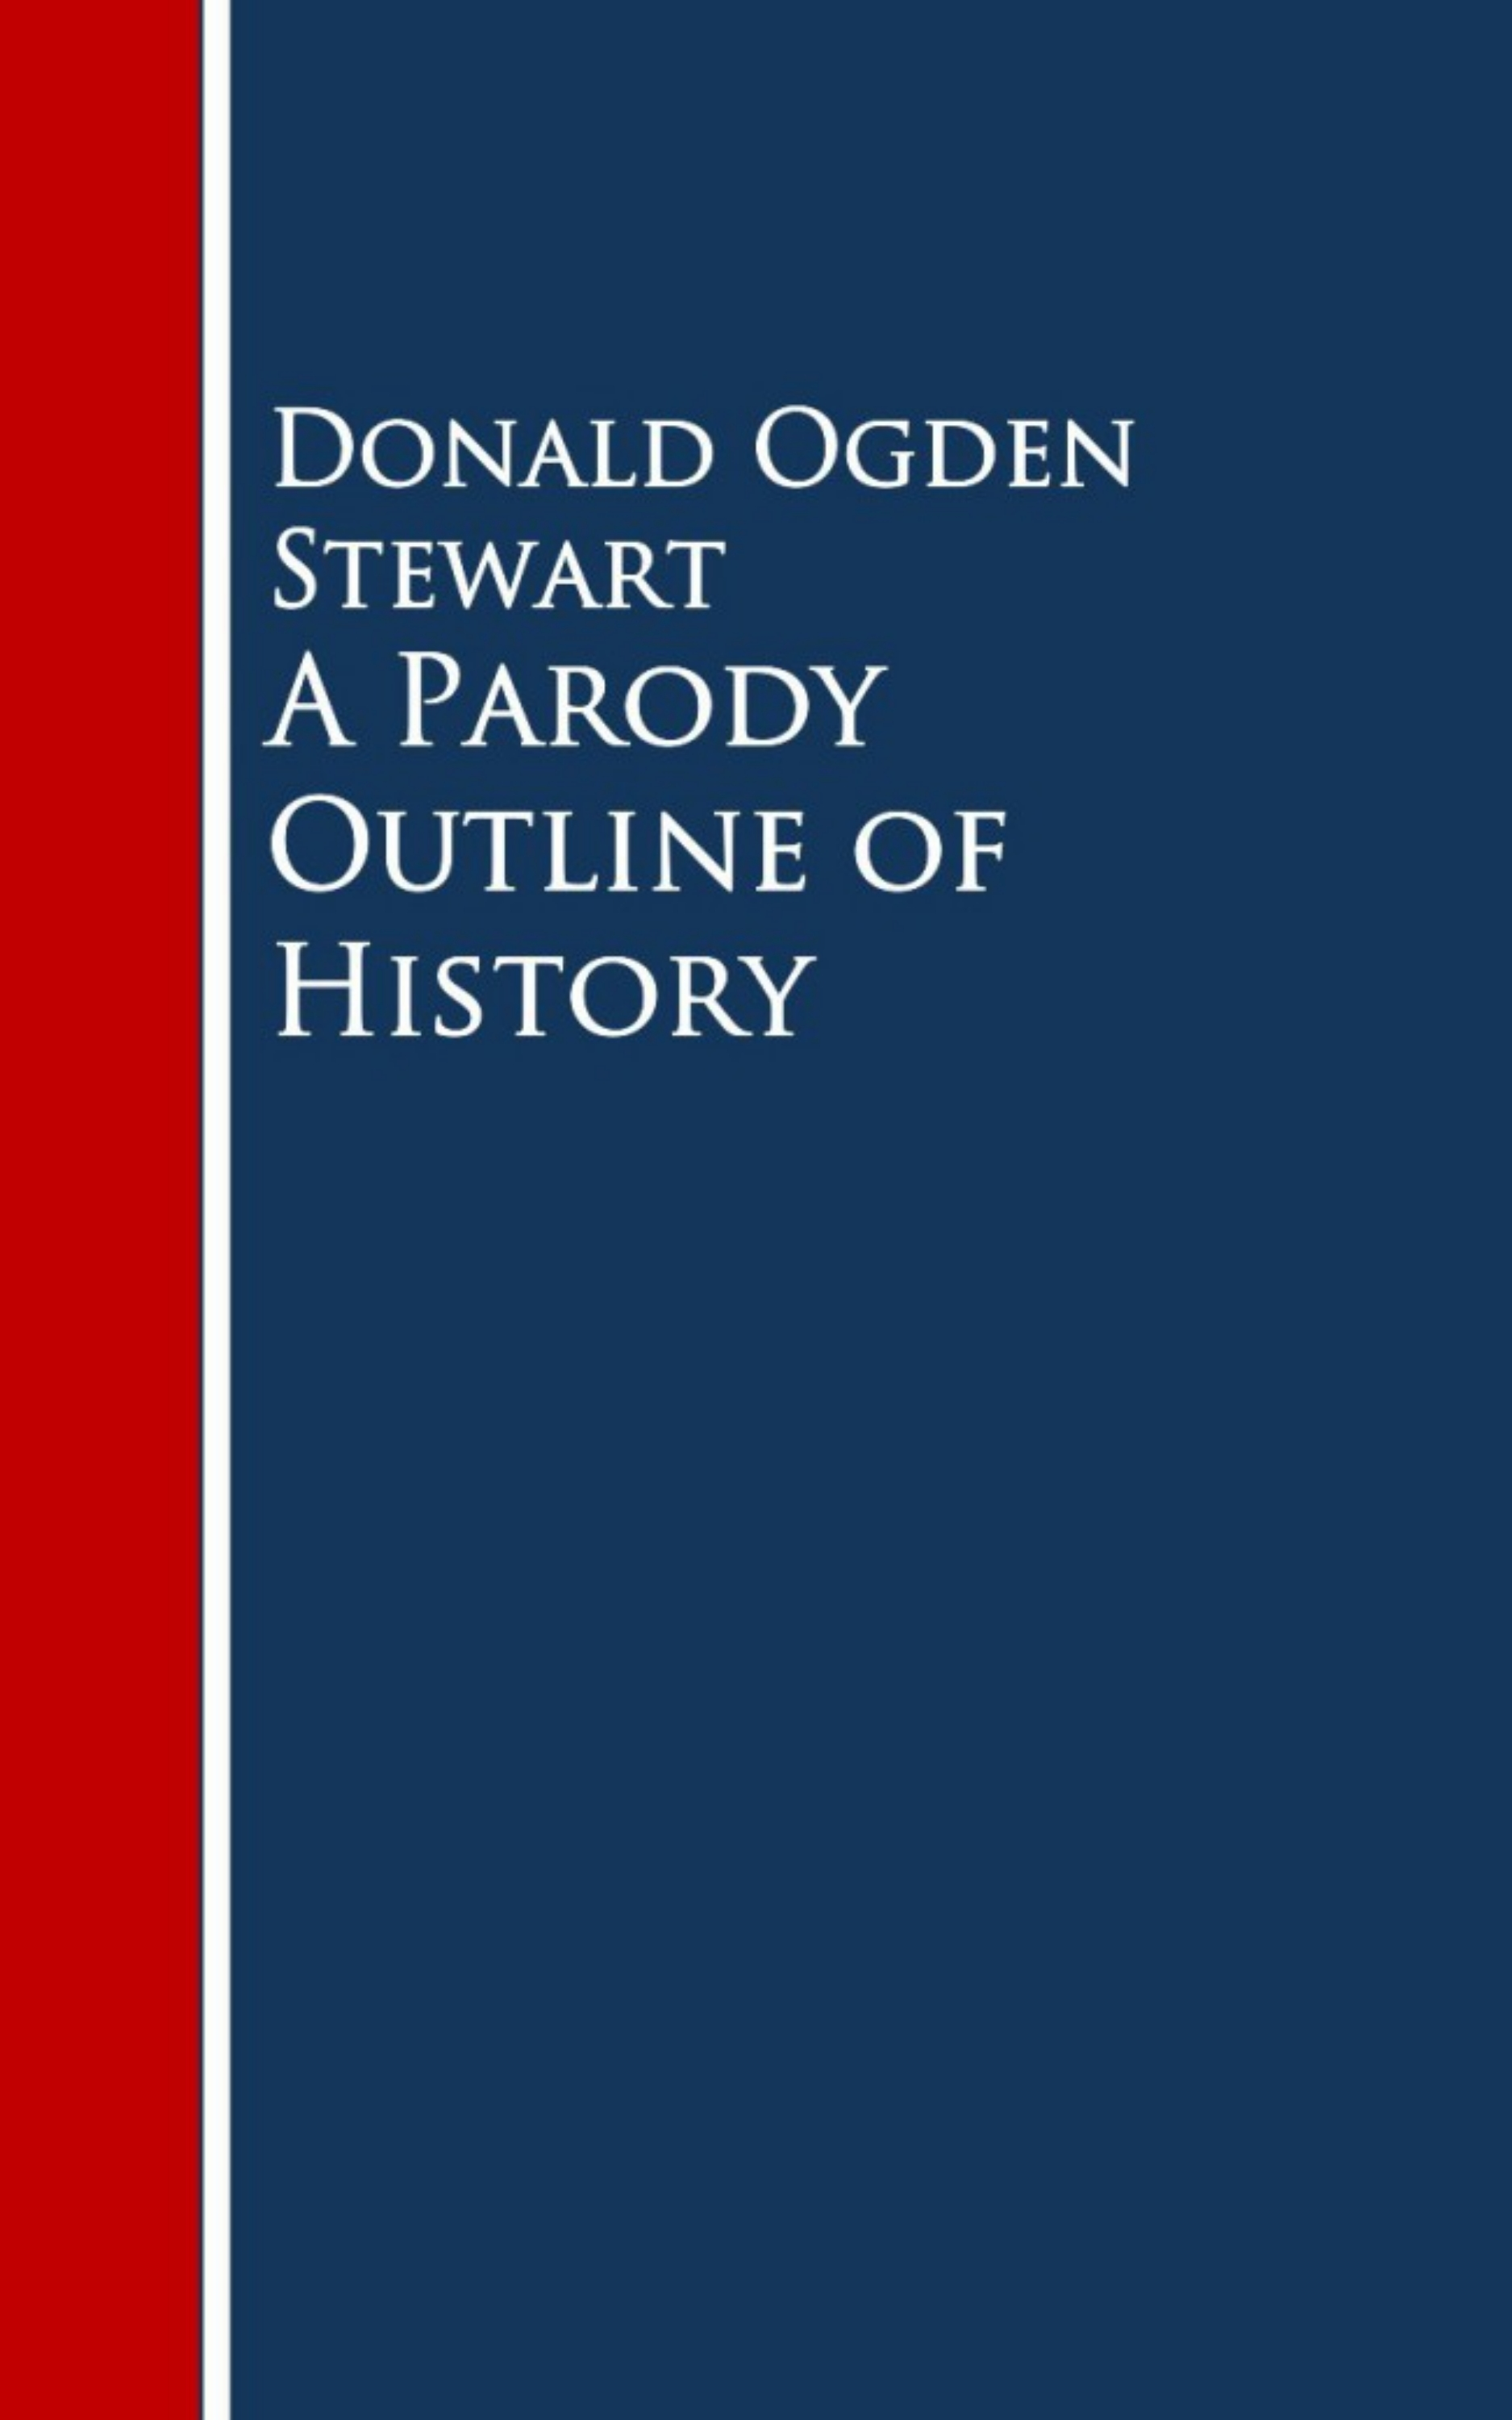 цена на Donald Ogden Stewart A Parody Outline of History